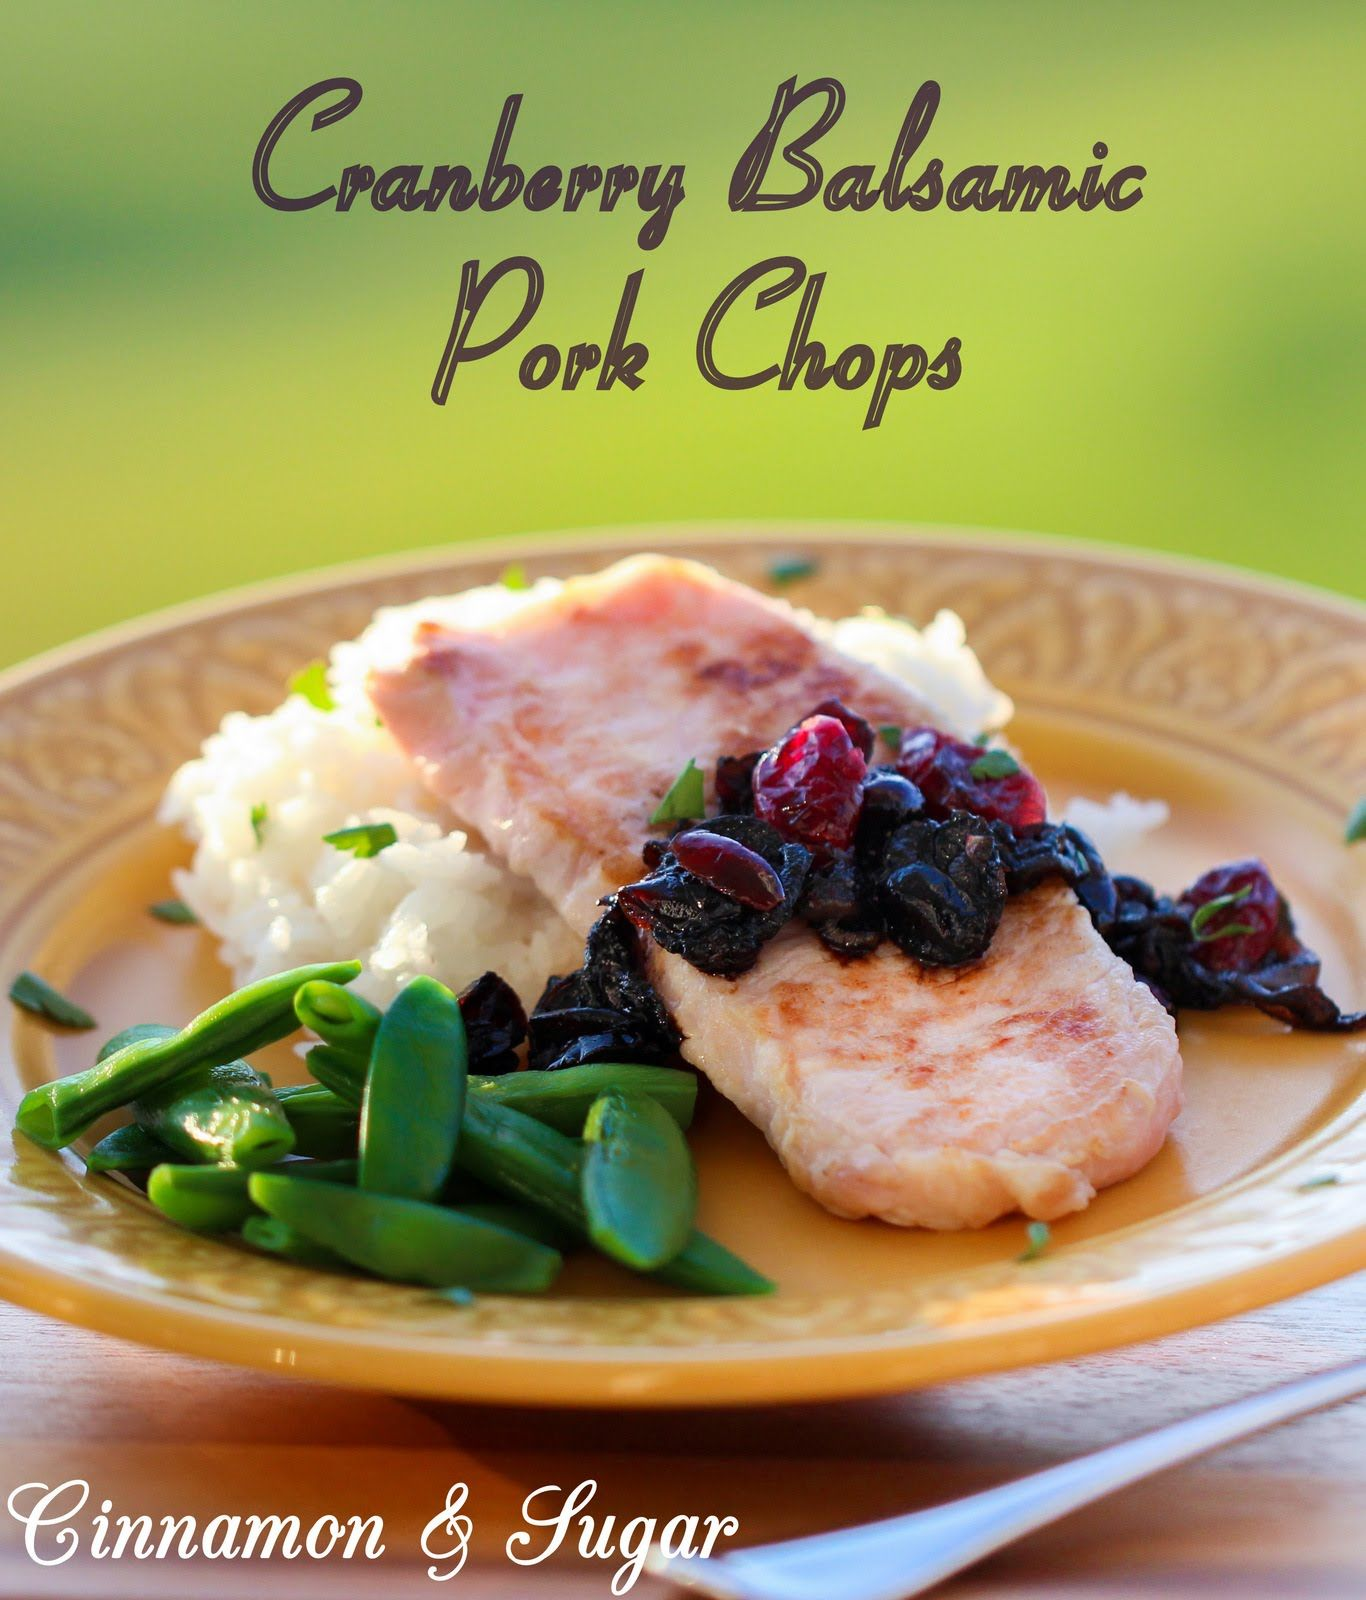 Using only 5 ingredients, Cranberry Balsamic Pork Chops are quick to cook with a stunning, flavorful pan sauce that will elevate any dinner! Recipe shared with permission granted by Peg Cochran, author of BERRY THE HATCHET. For the full recipe please visit http://cinnamonsugarandalittlebitofmurder.com/2016/05/cranberry-balsamic-pork-chops/